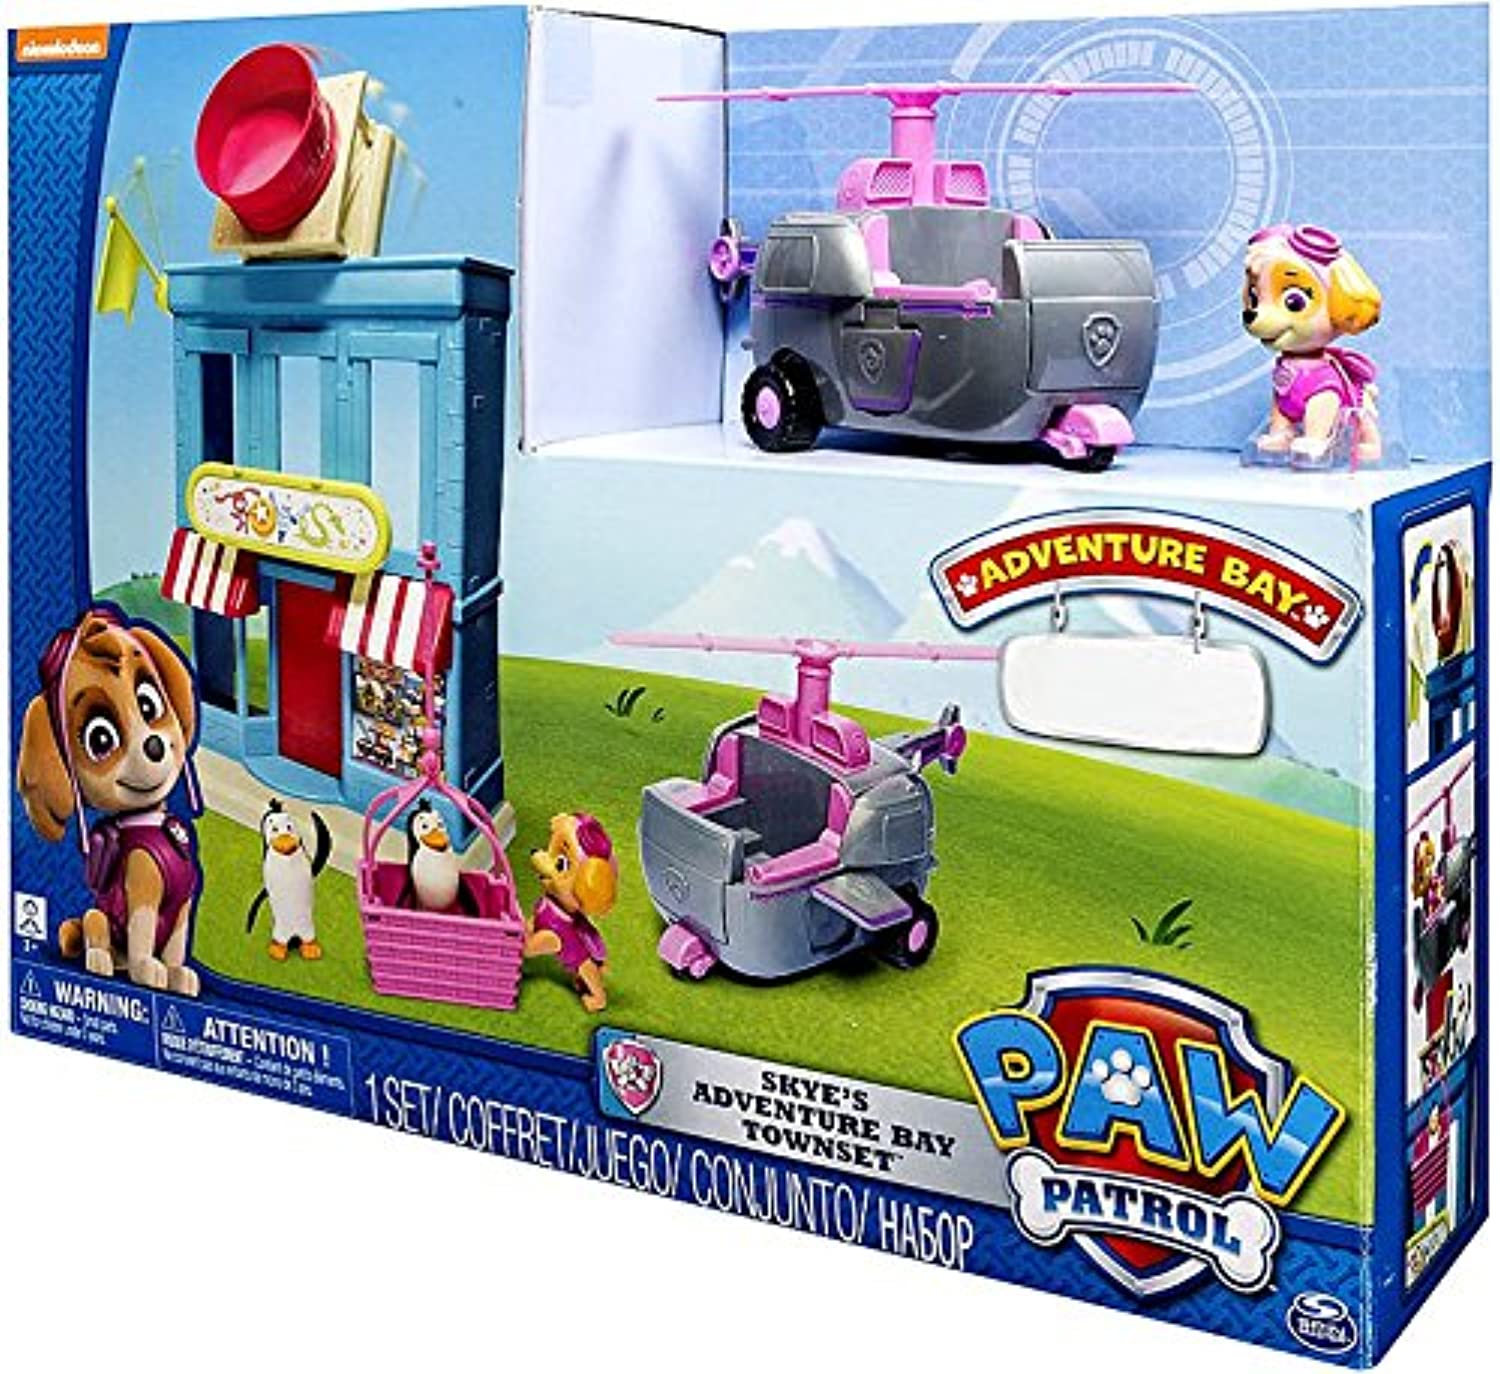 Paw Patrol Skye's Helicopter and Townset